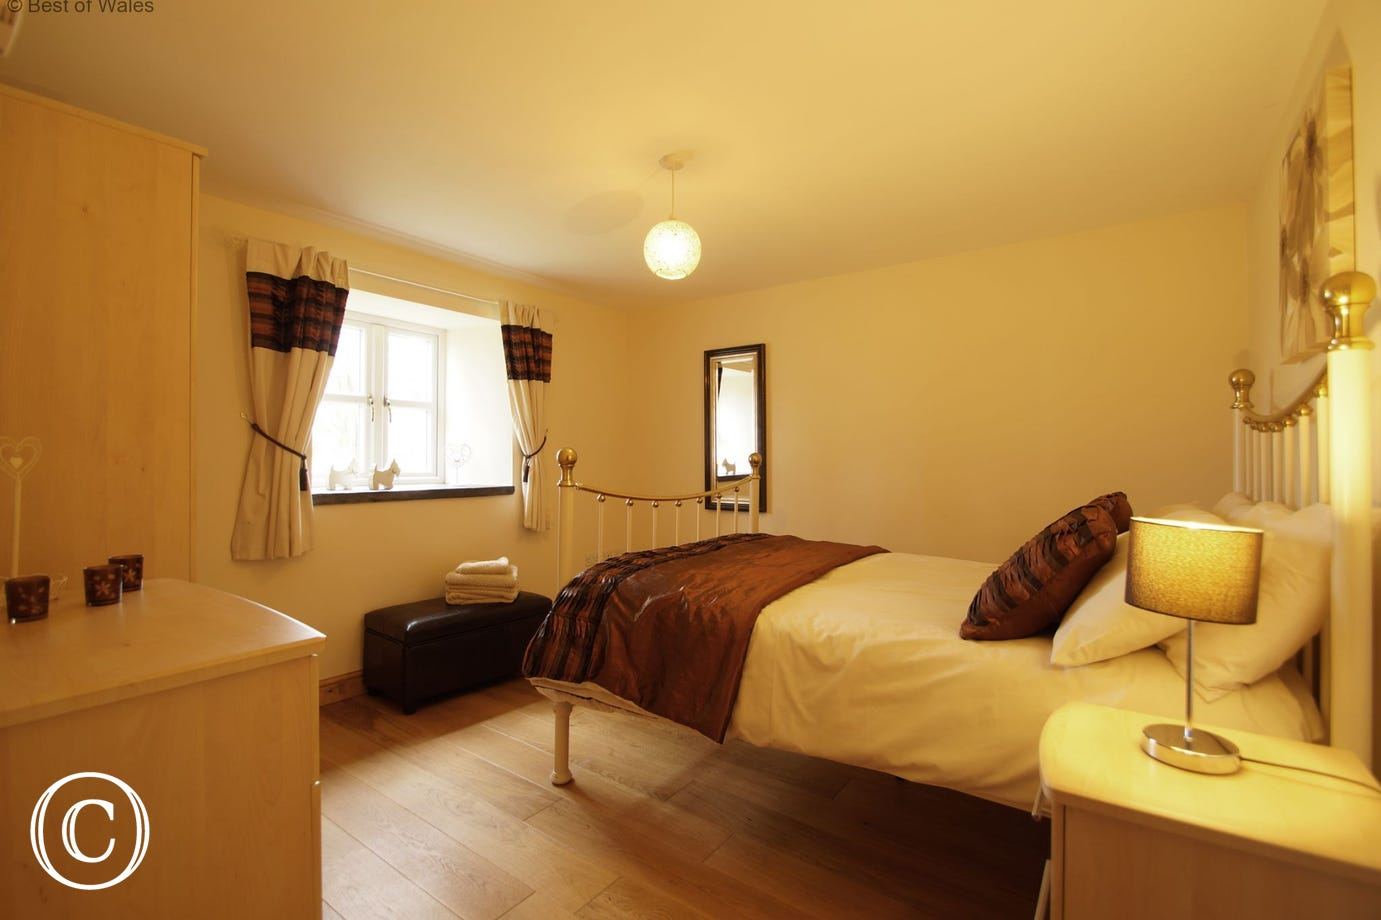 Holiday accommodation in North Wales: ground floor double room